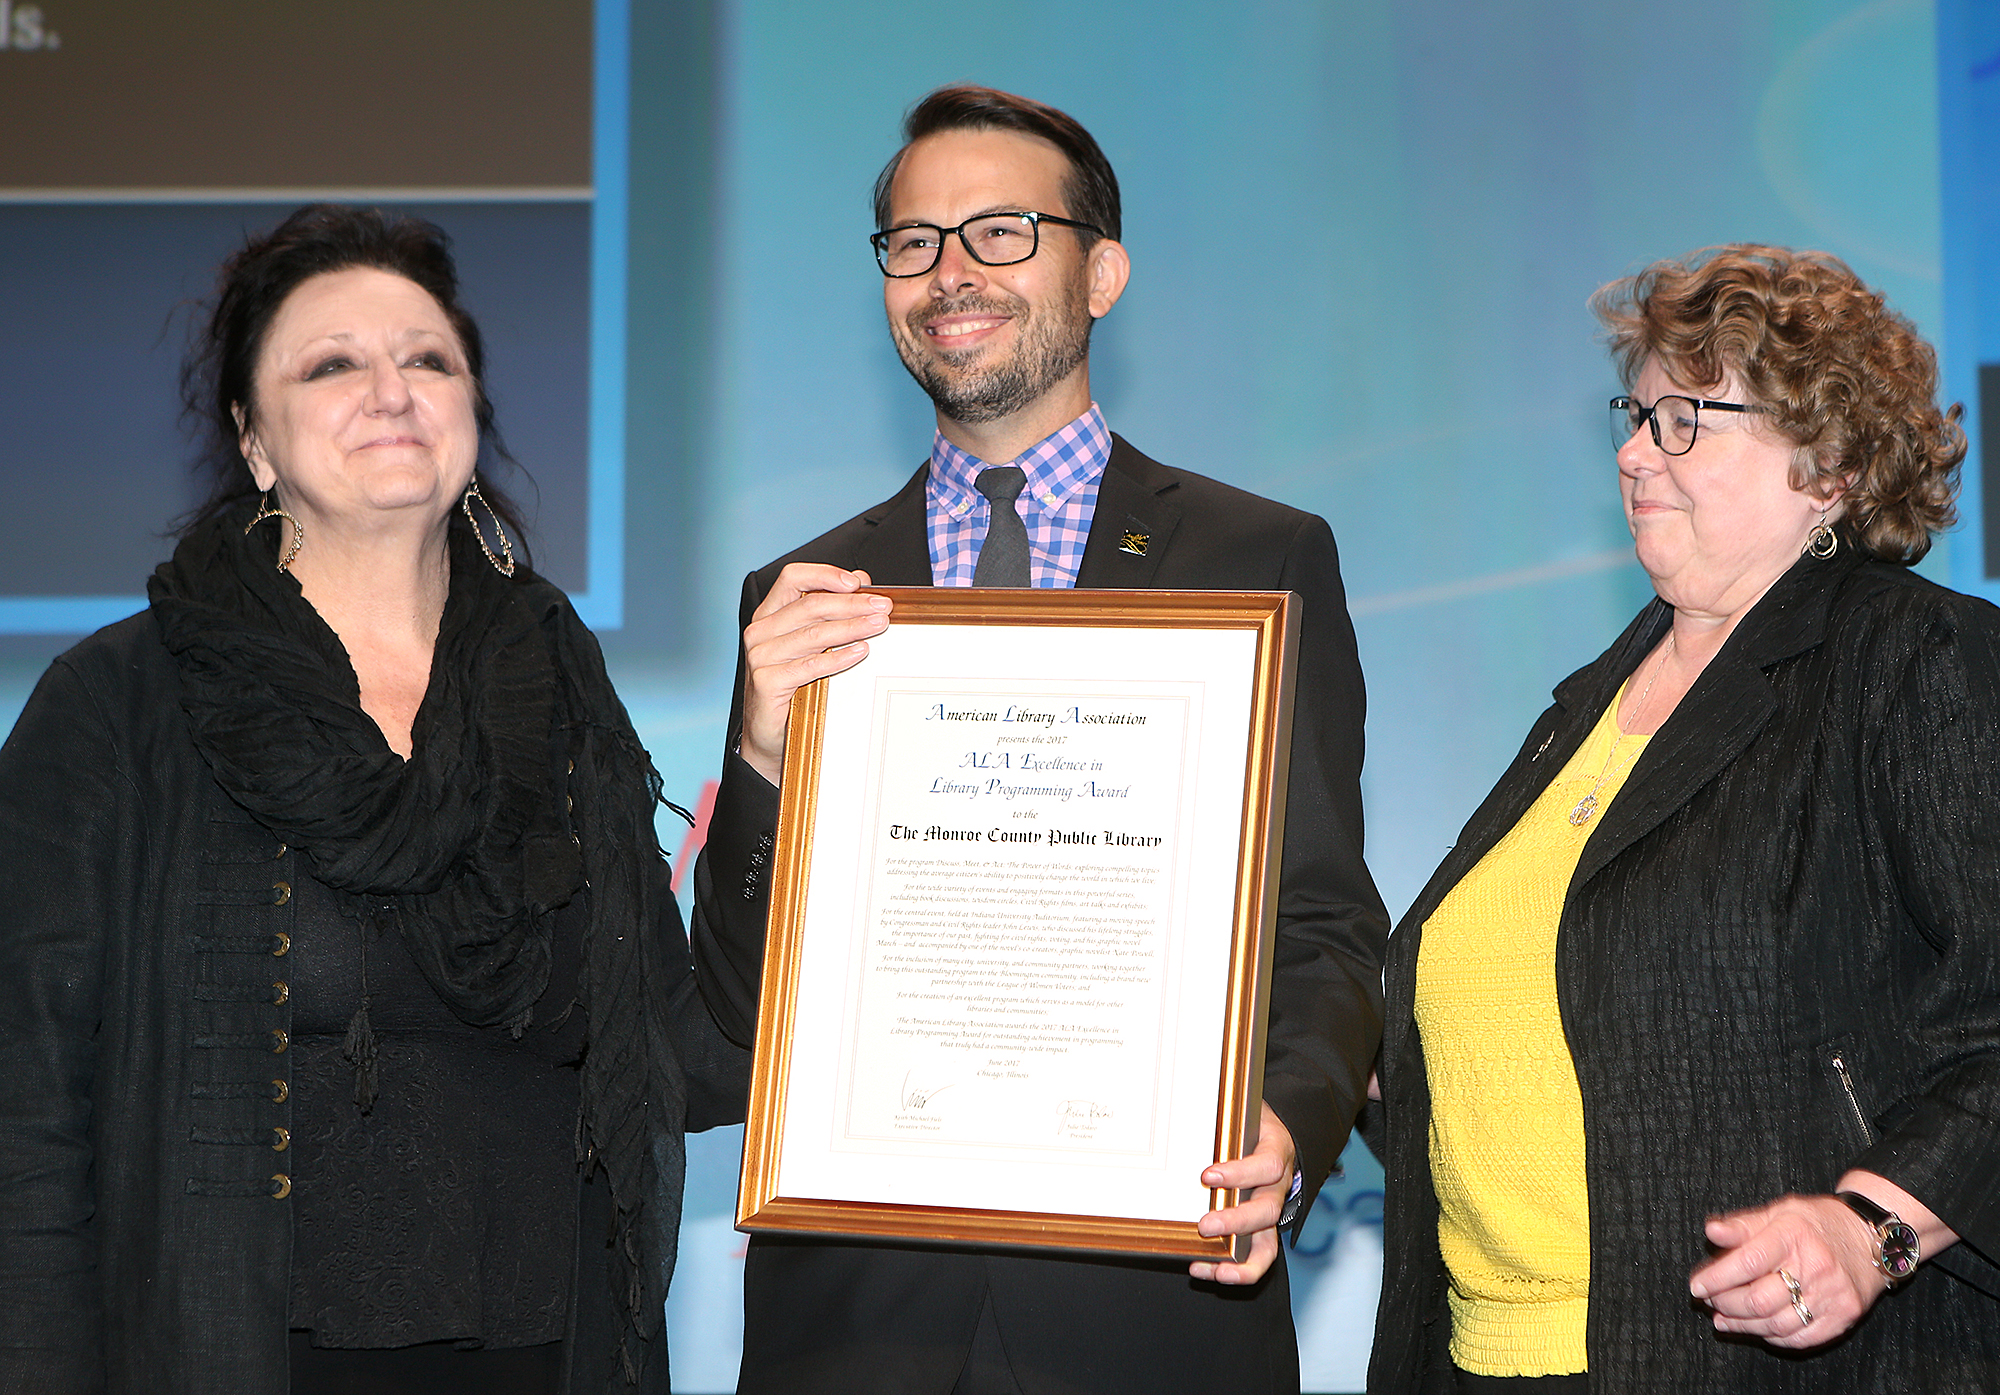 ALA President Julie Todaro (left) and Cultural Communites Chair Cassandra Barnet present Michael Hoerger of Monroe County Public Library the ALA Excellence in Library Programming Award on Sunday, June 25, in Chicago. (Photo by American Library Association)